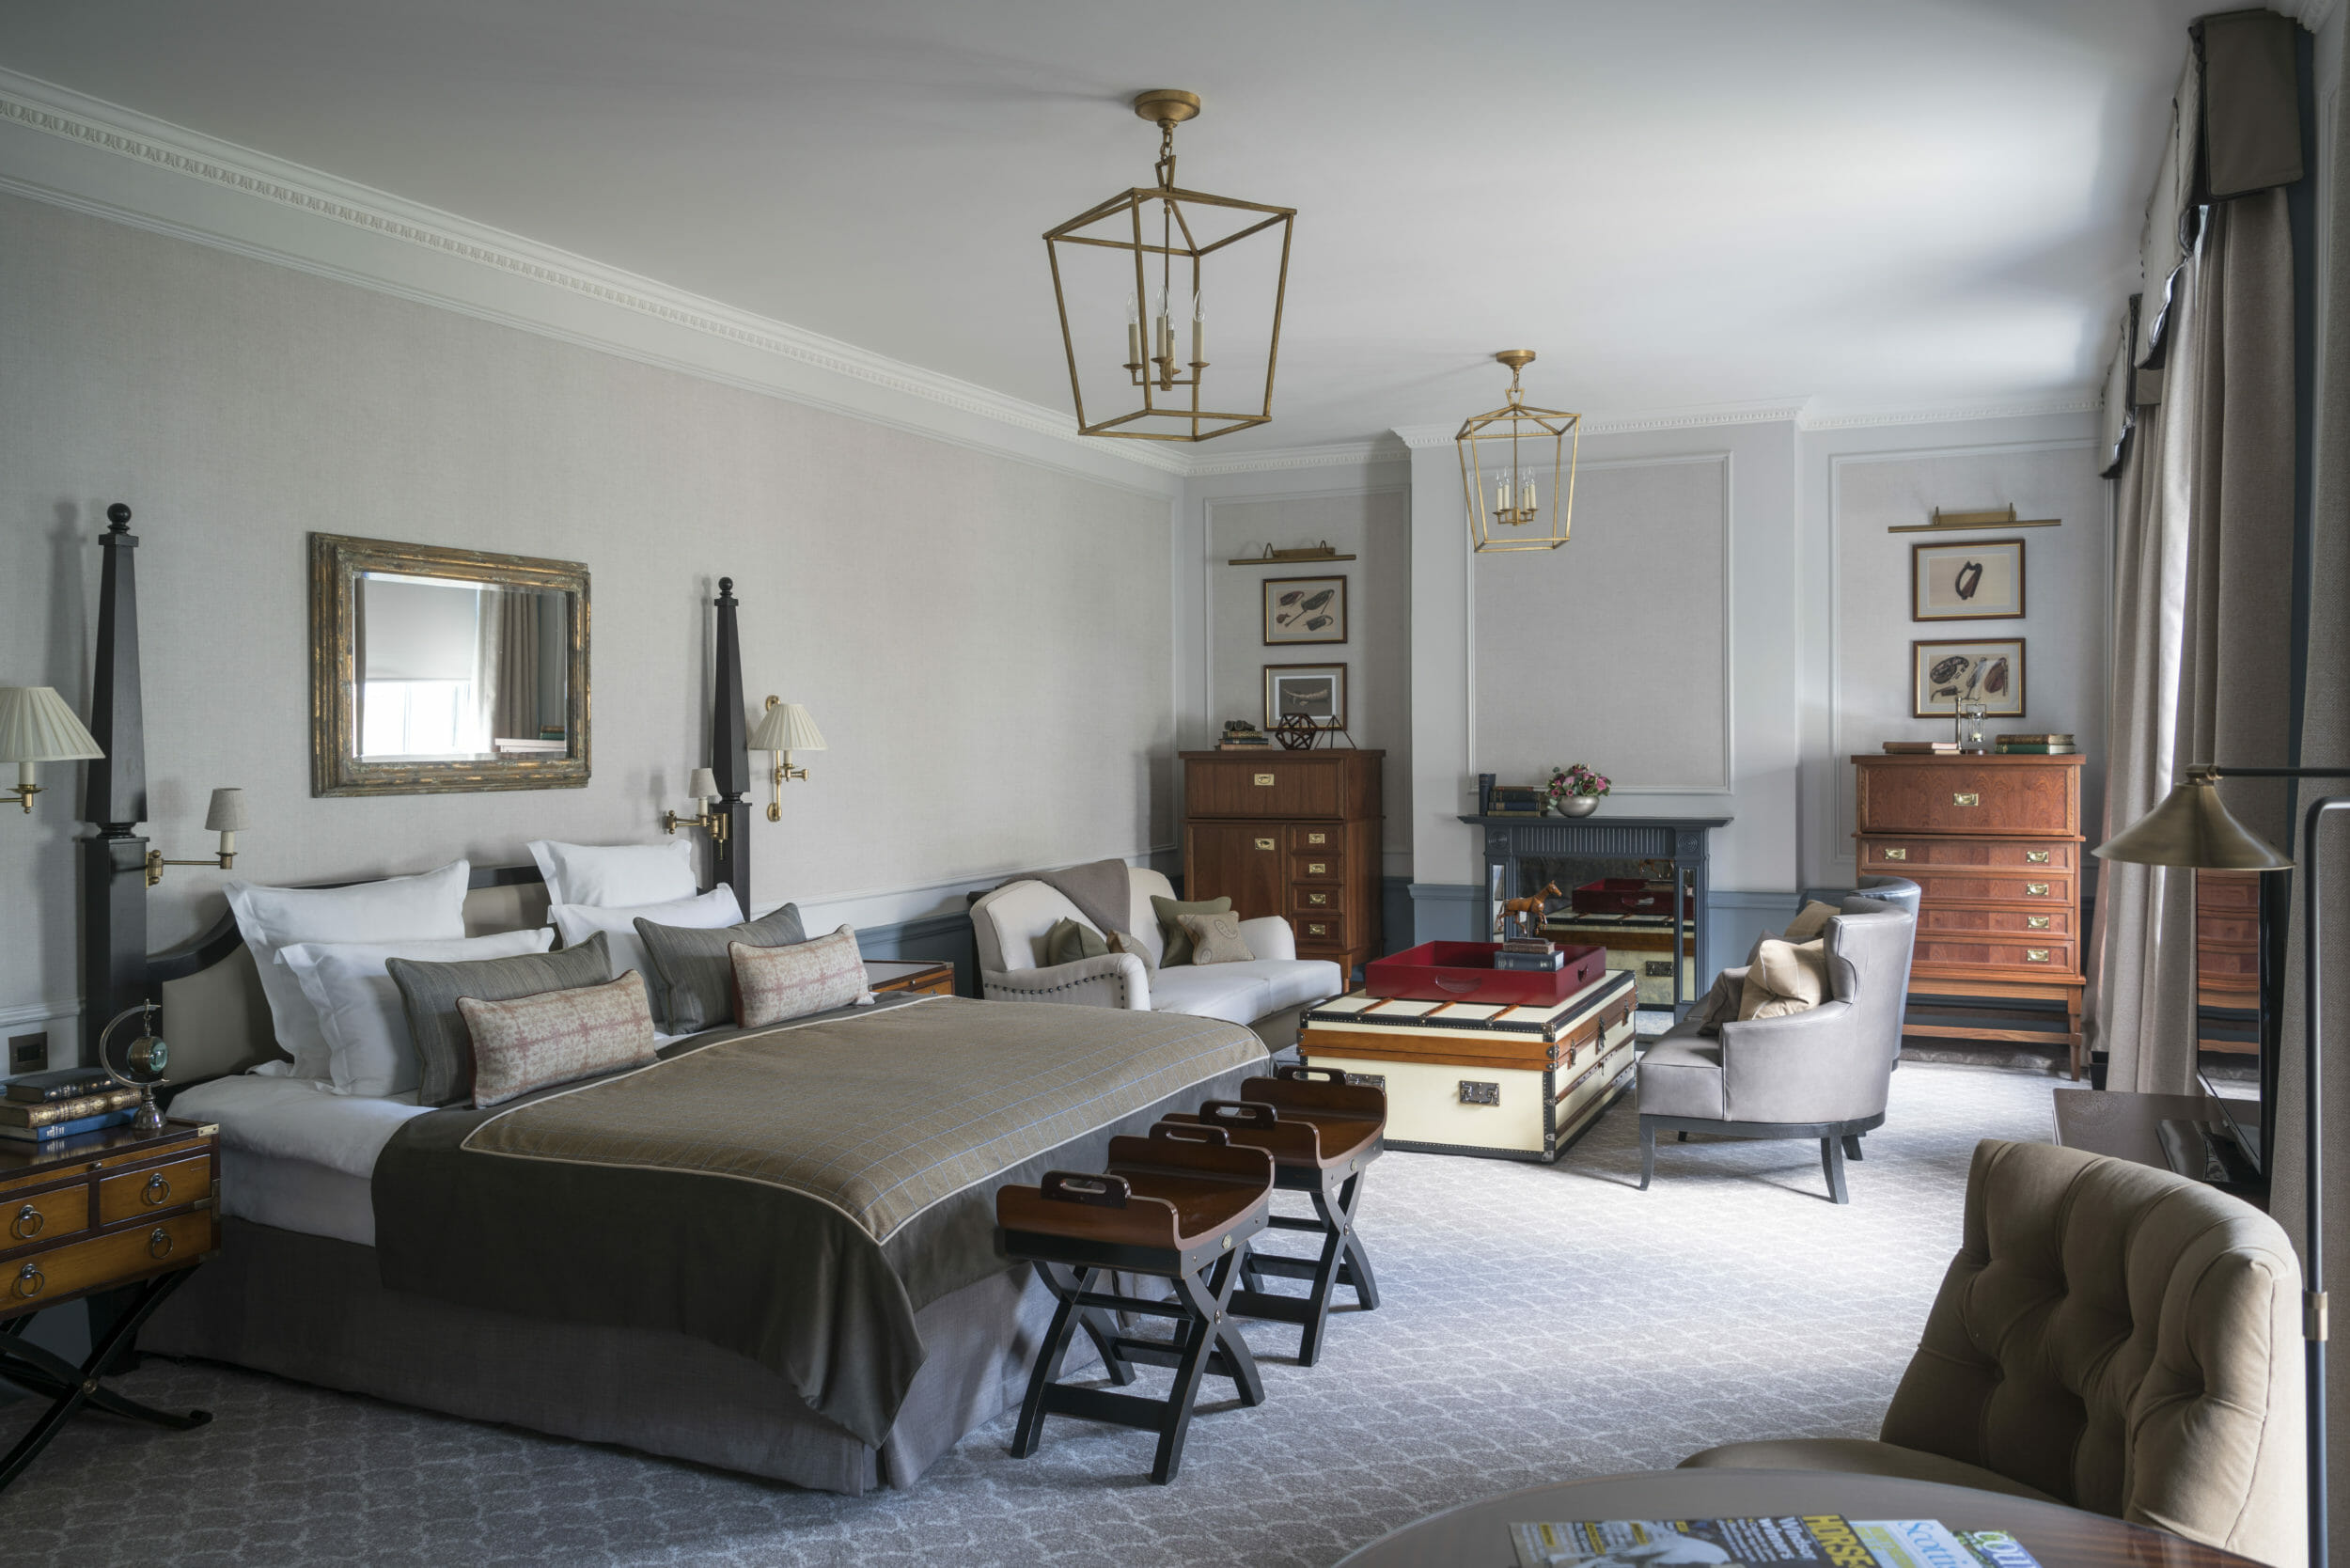 Large living area and king bed adorn the luxury sovereign room